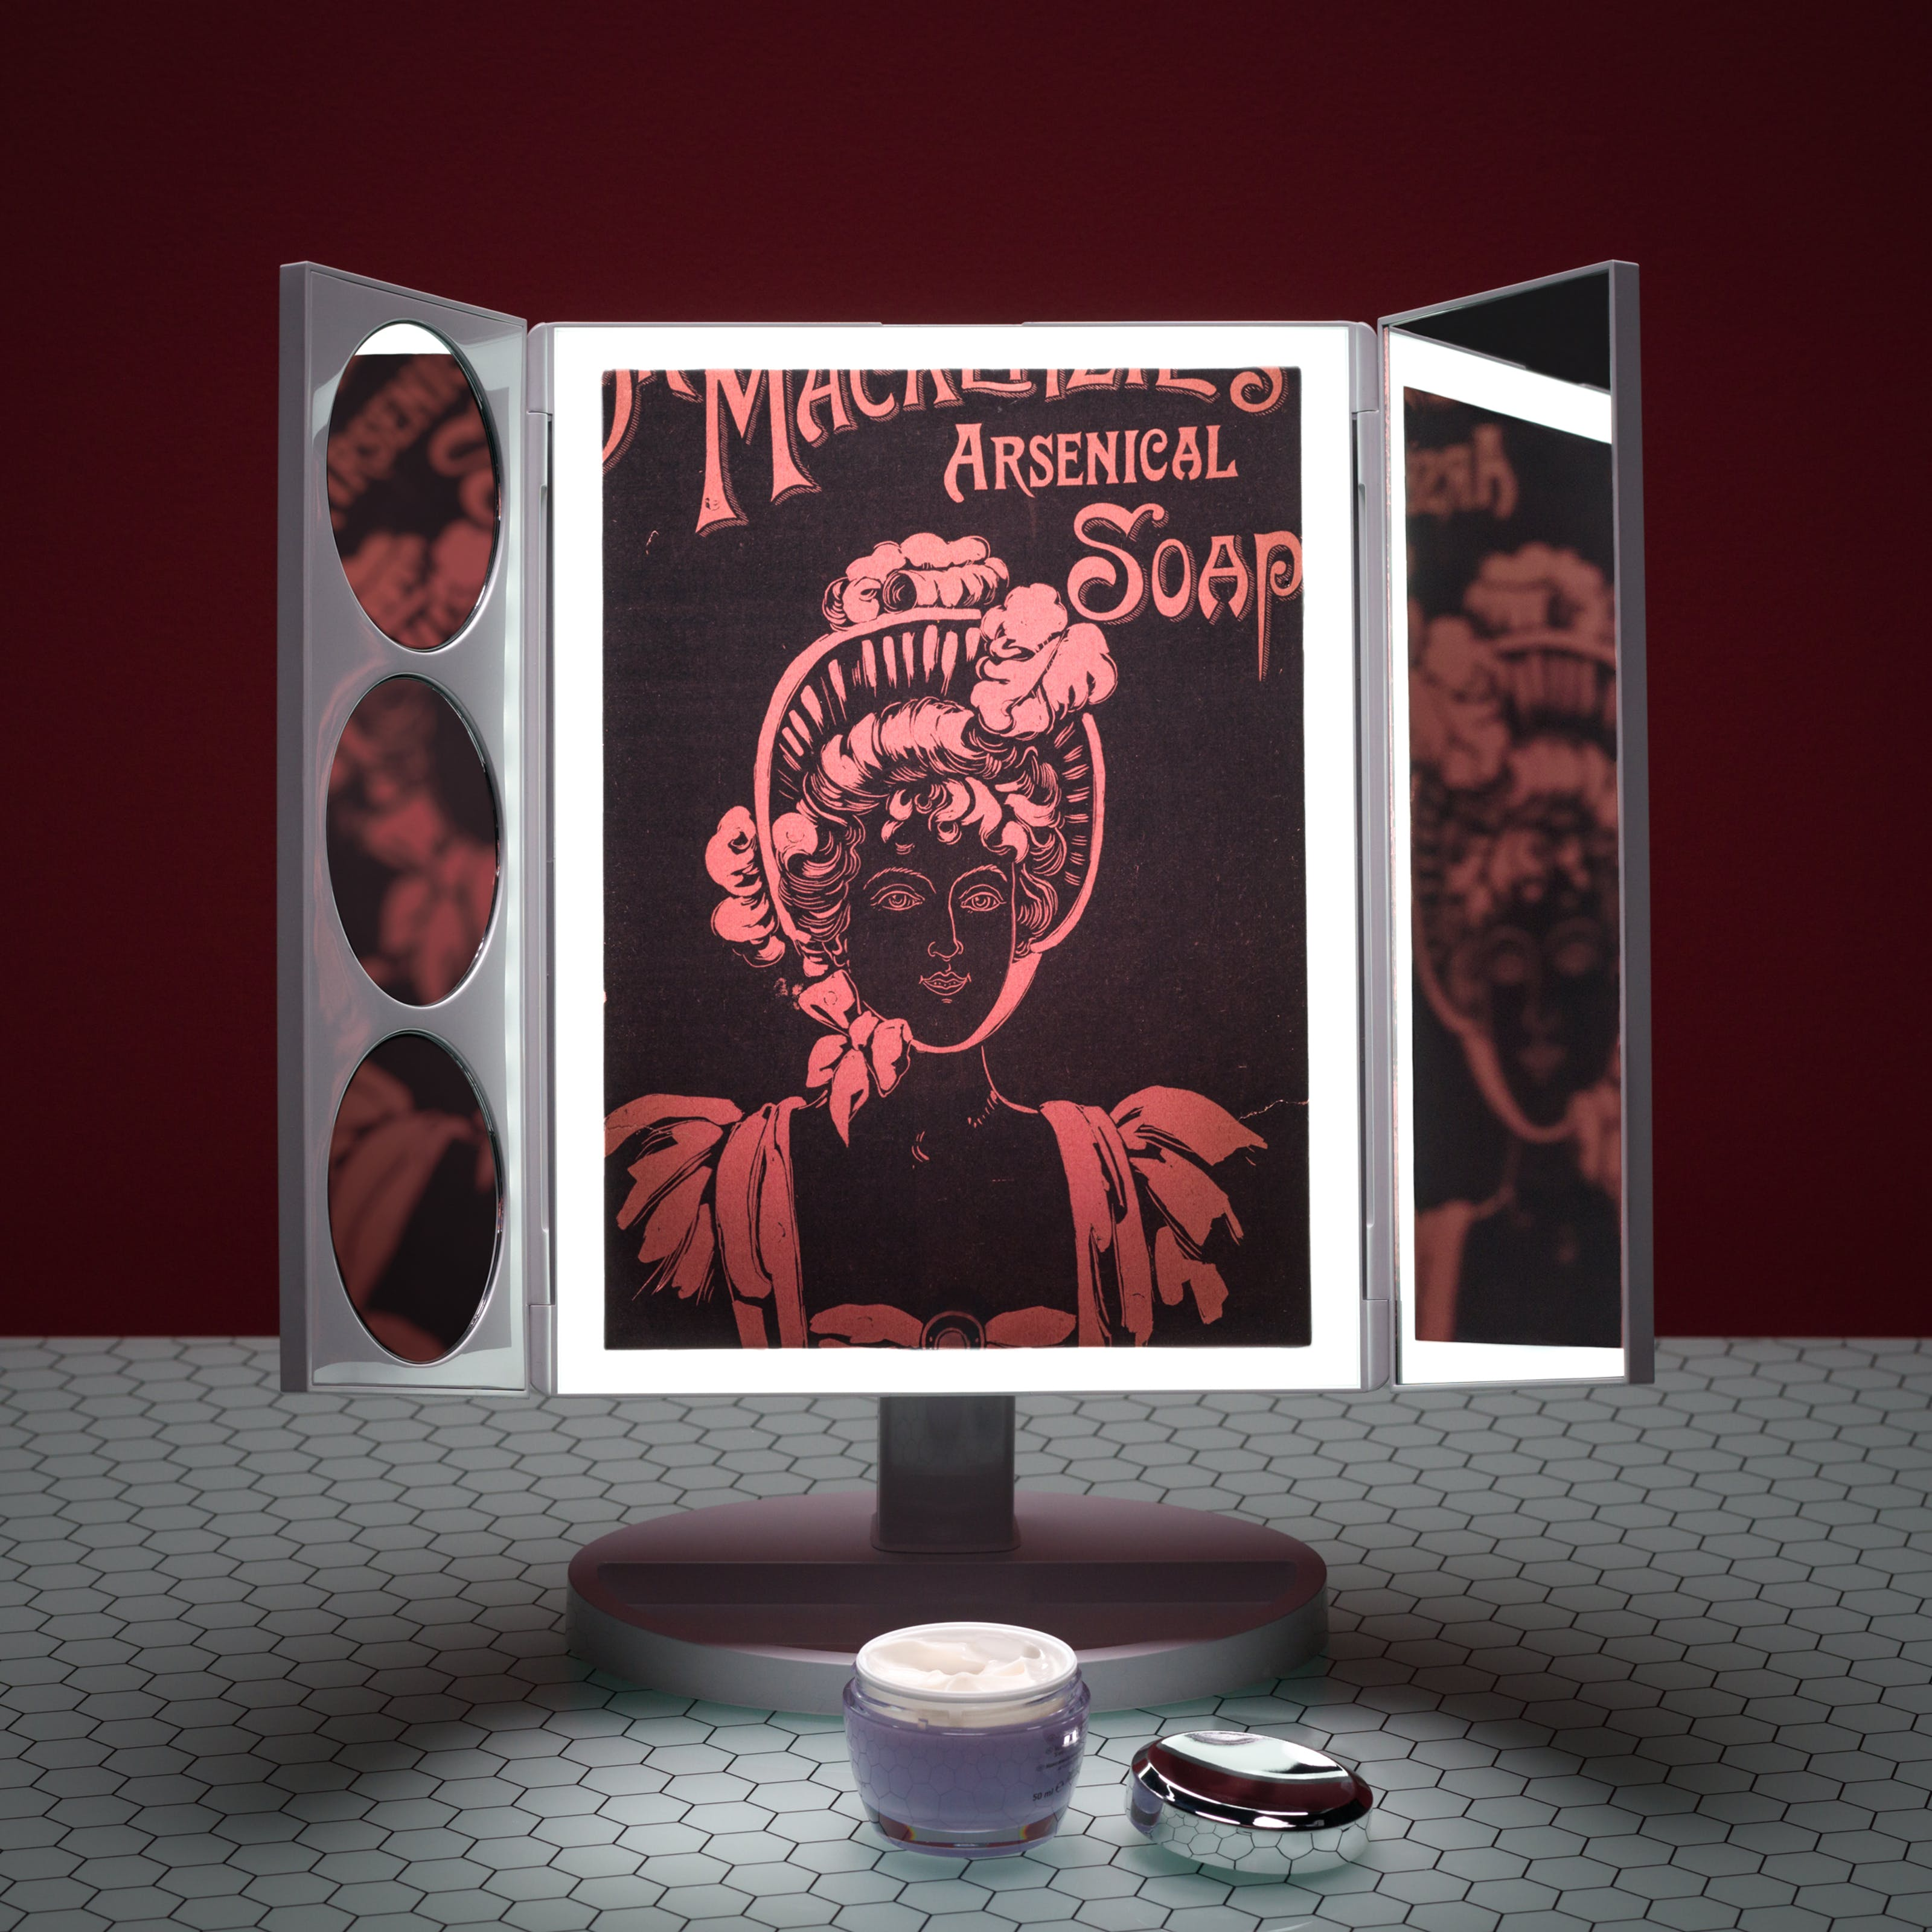 Photograph of a three-fold table beauty mirror with built-in light on a glass patterned tabletop, against a dark red background. On the table in front of the mirror is an open jar of face cream. In the reflections of the mirror an old advertisement for Dr. Mackenzie's Arsenical Soap, be seen.